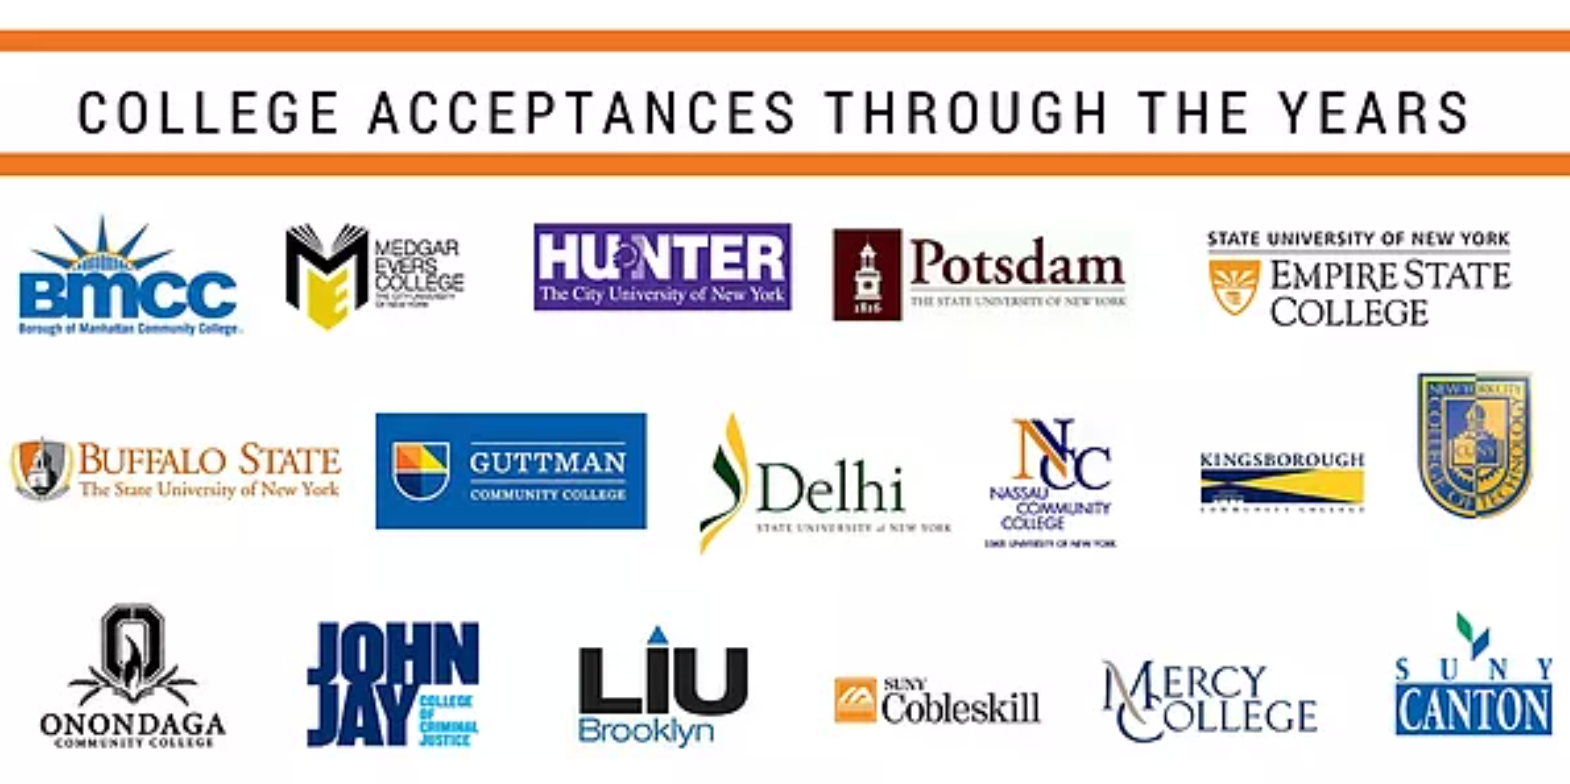 Collage of college acceptances through the years